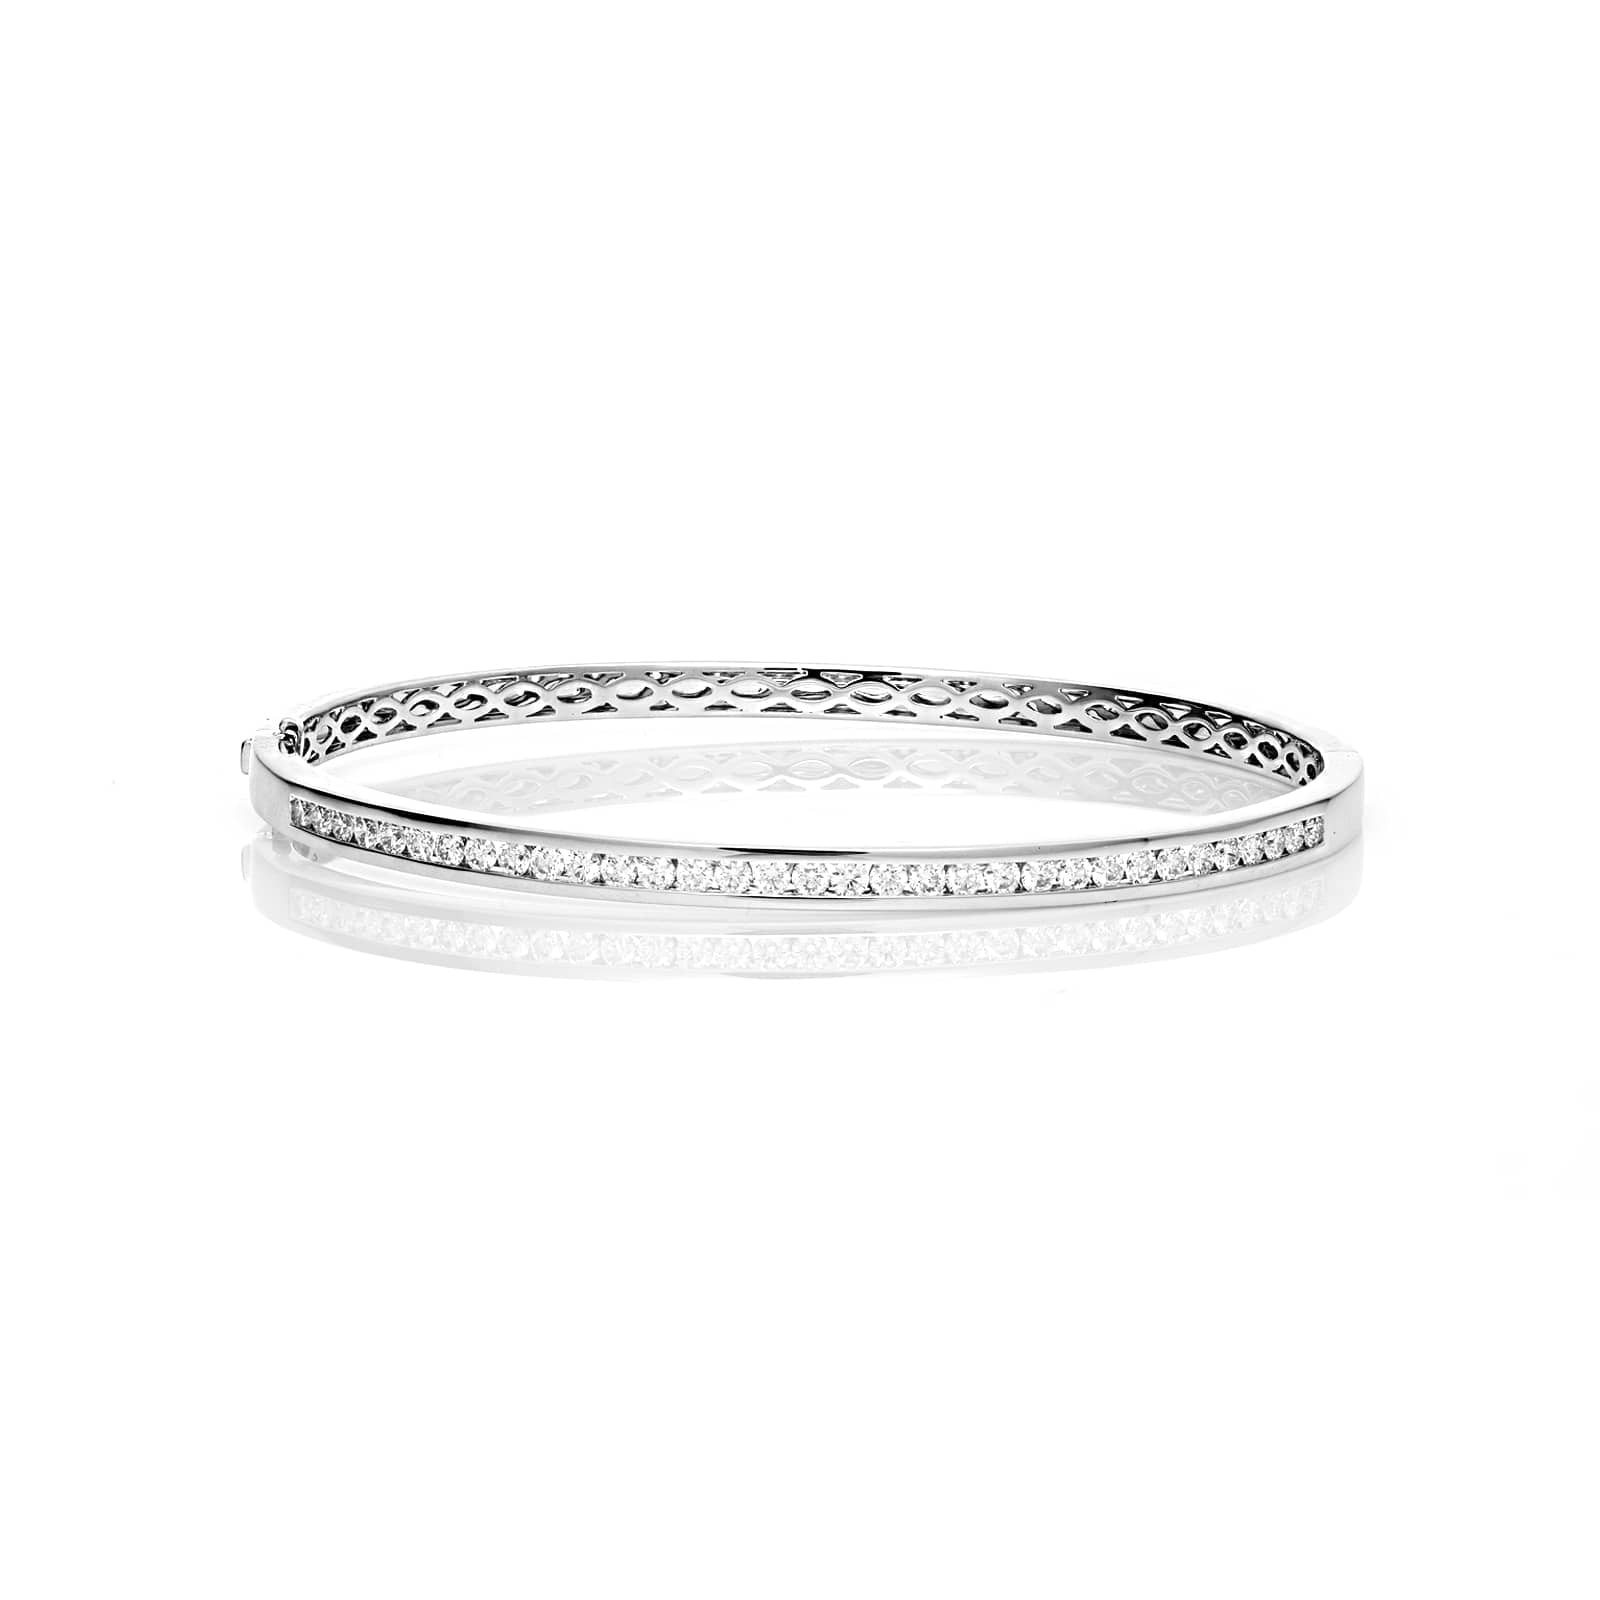 Mayors 18ct White Gold 1.00ct Channel Set Bangle